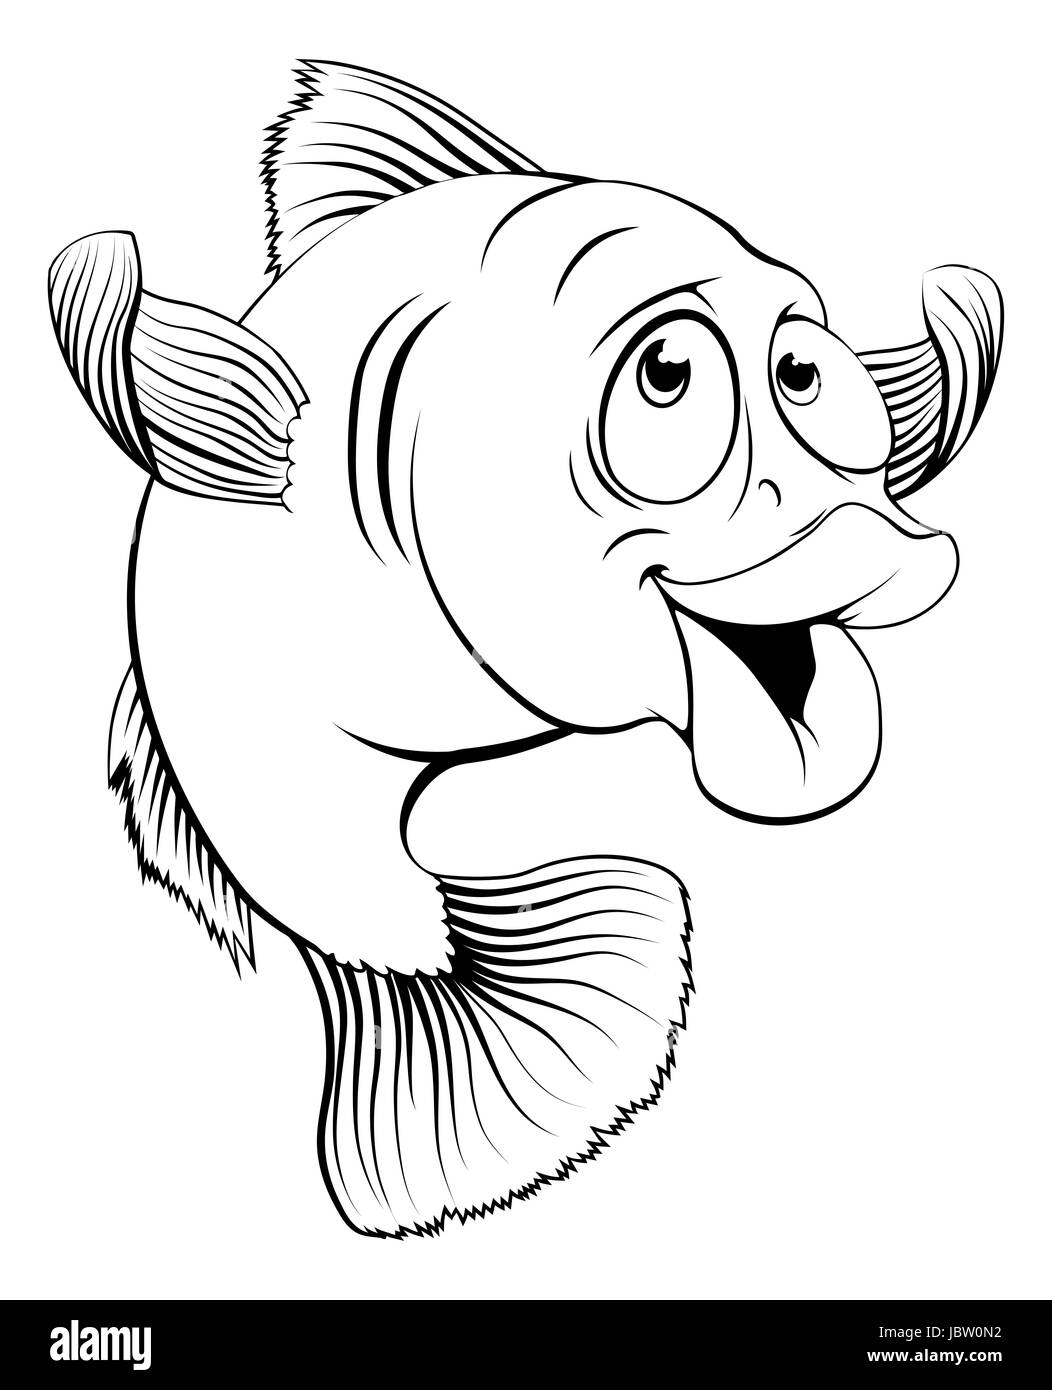 an illustration of a happy cute cartoon cod fish in black and